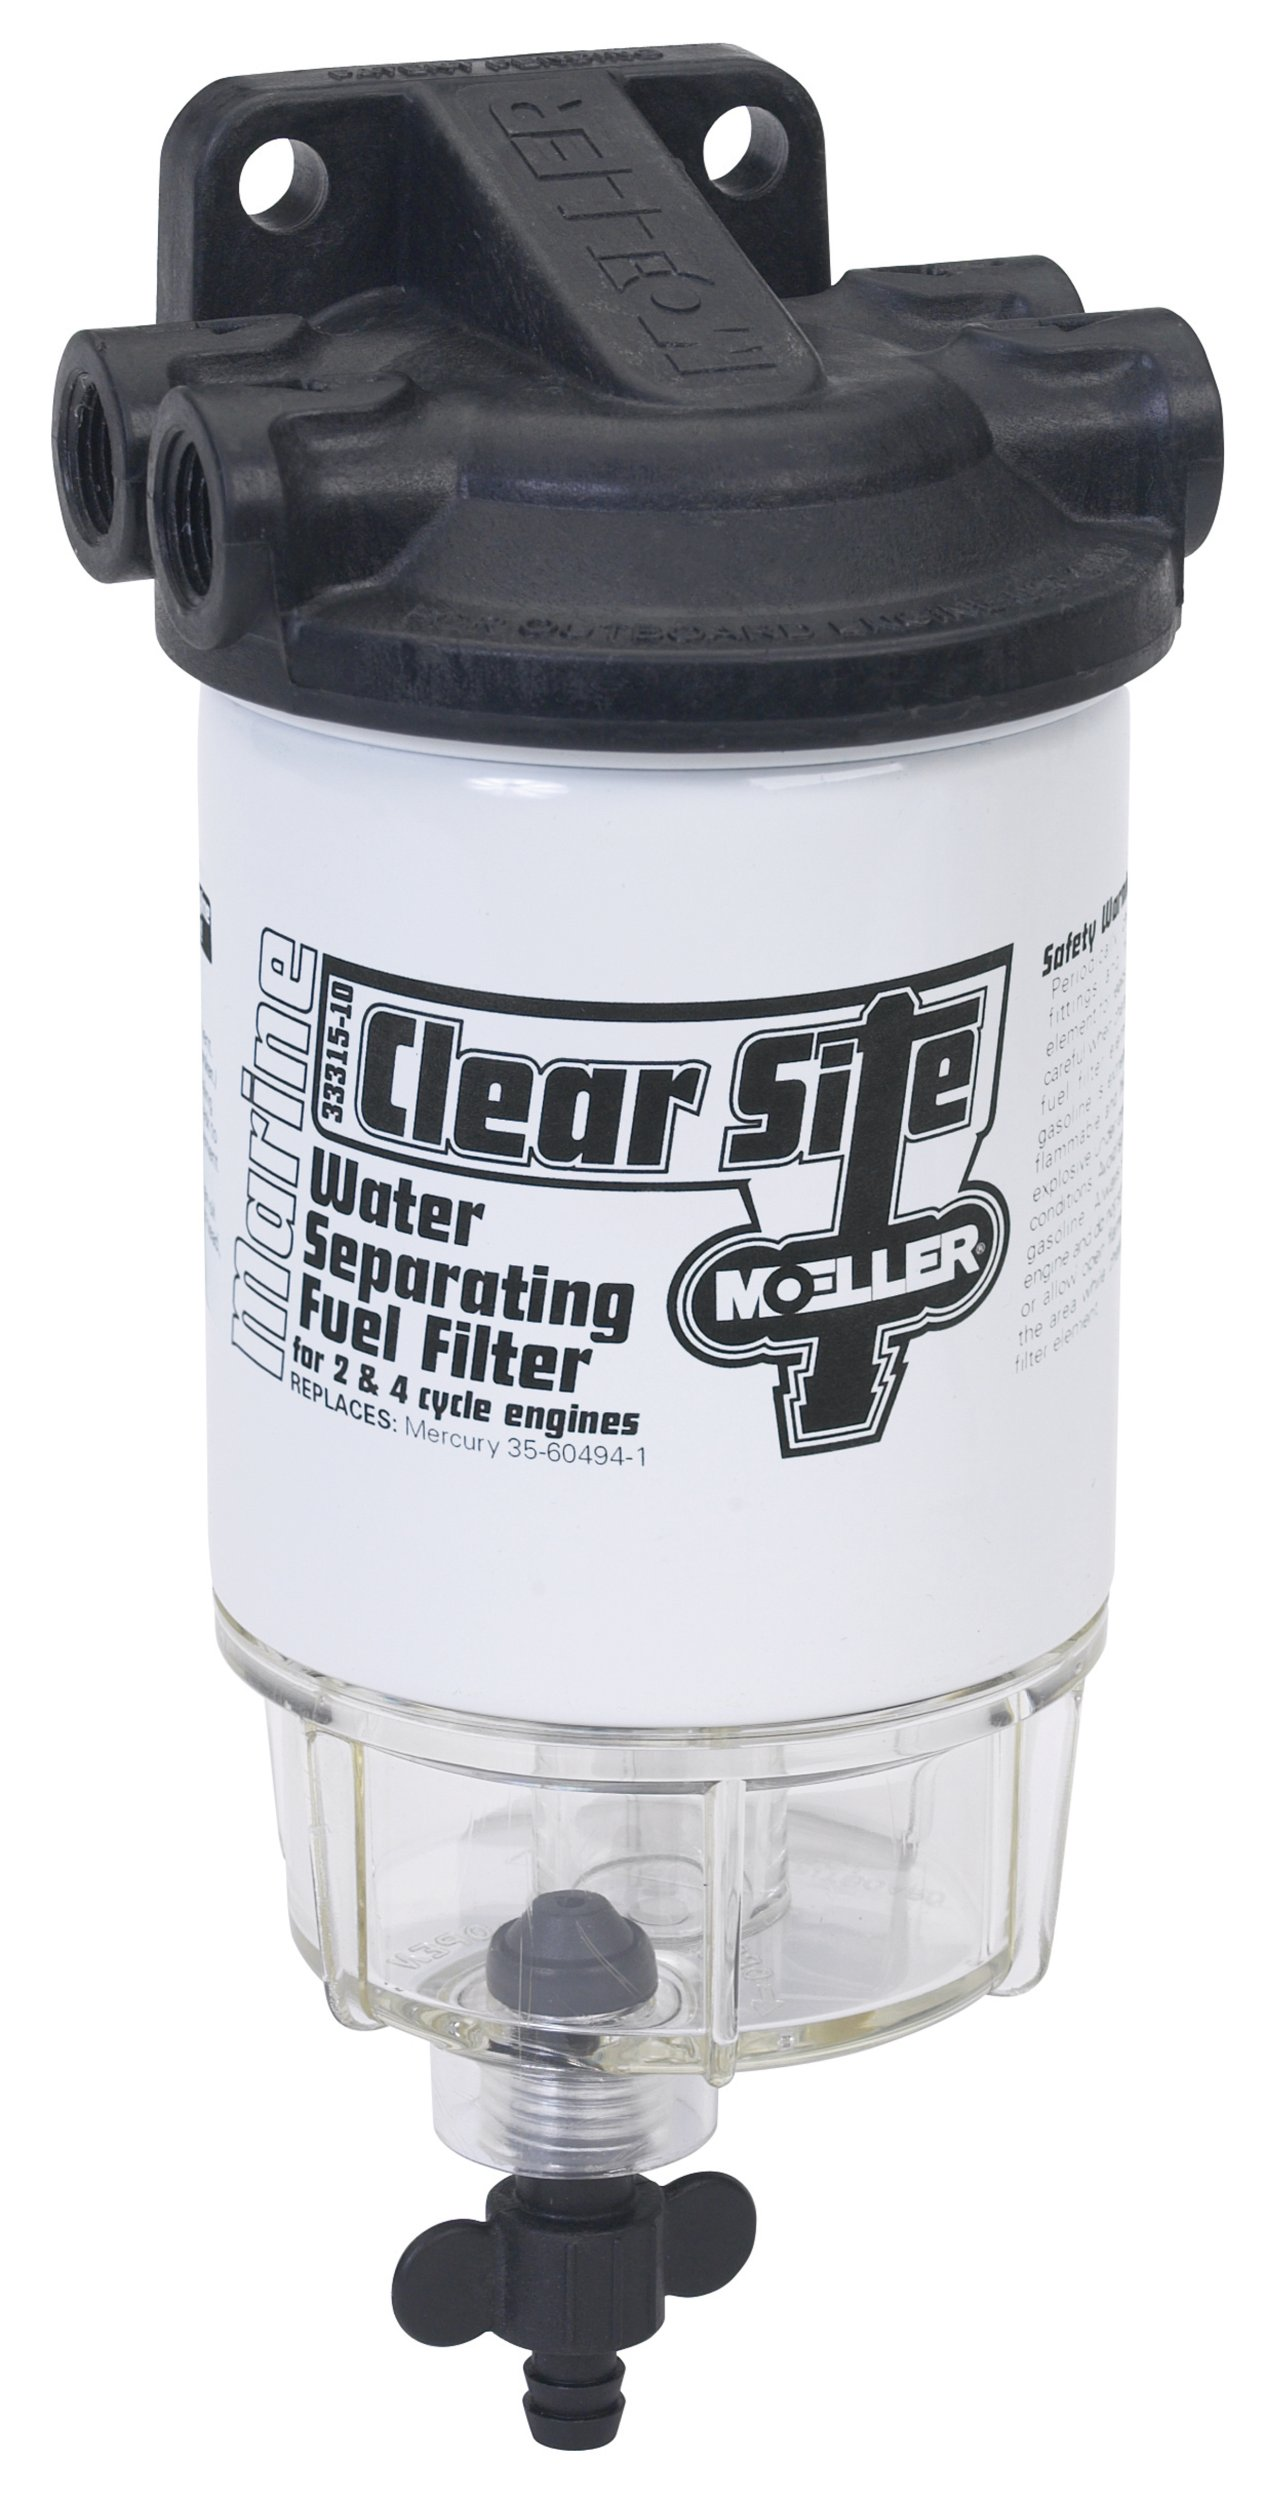 Moeller Clear Site Water Separating Fuel Filter System for outboard Motors (3/8'' NPT, Composite)